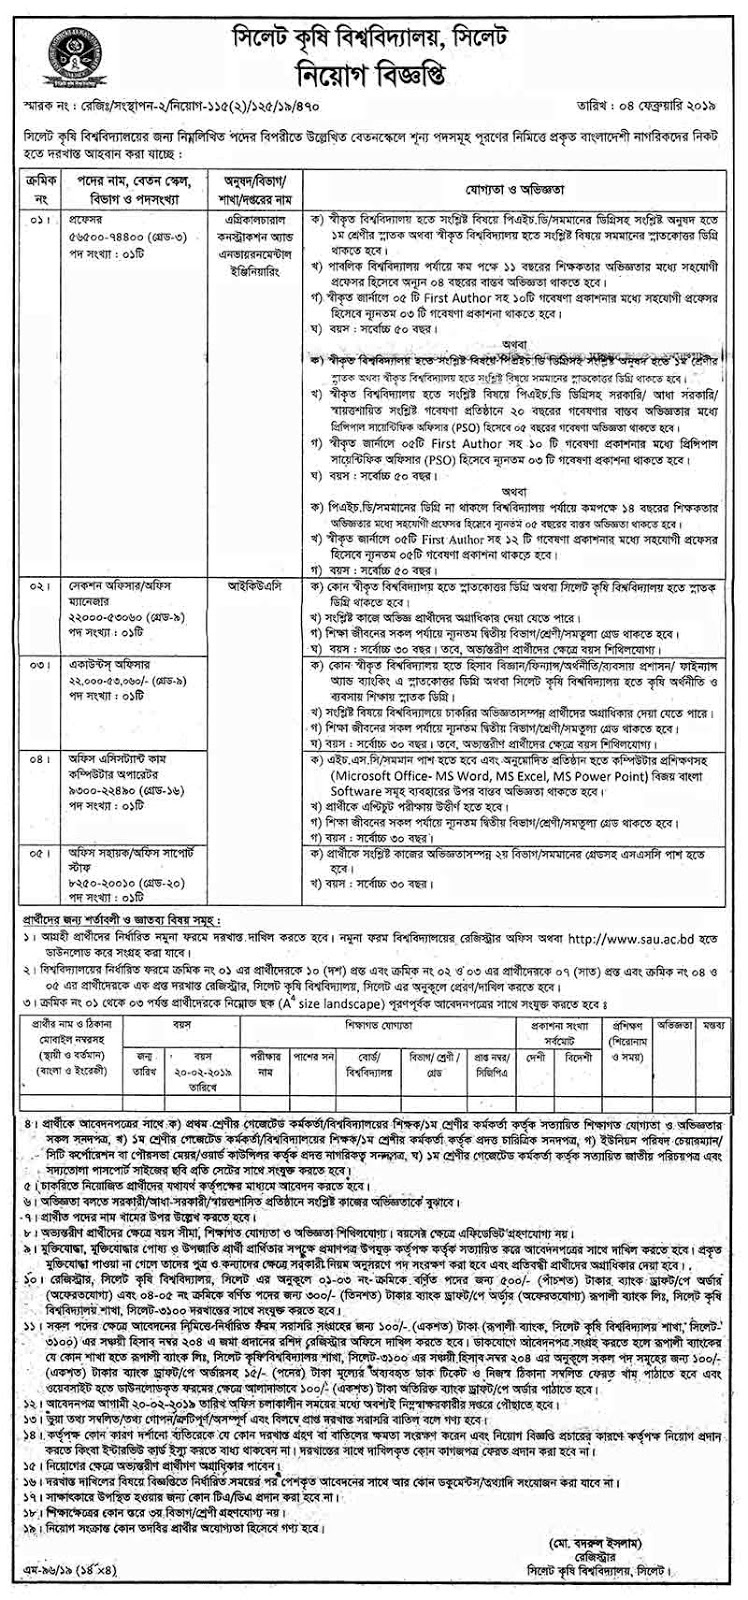 All Running Govt Job Circular (February-2019) - Study and